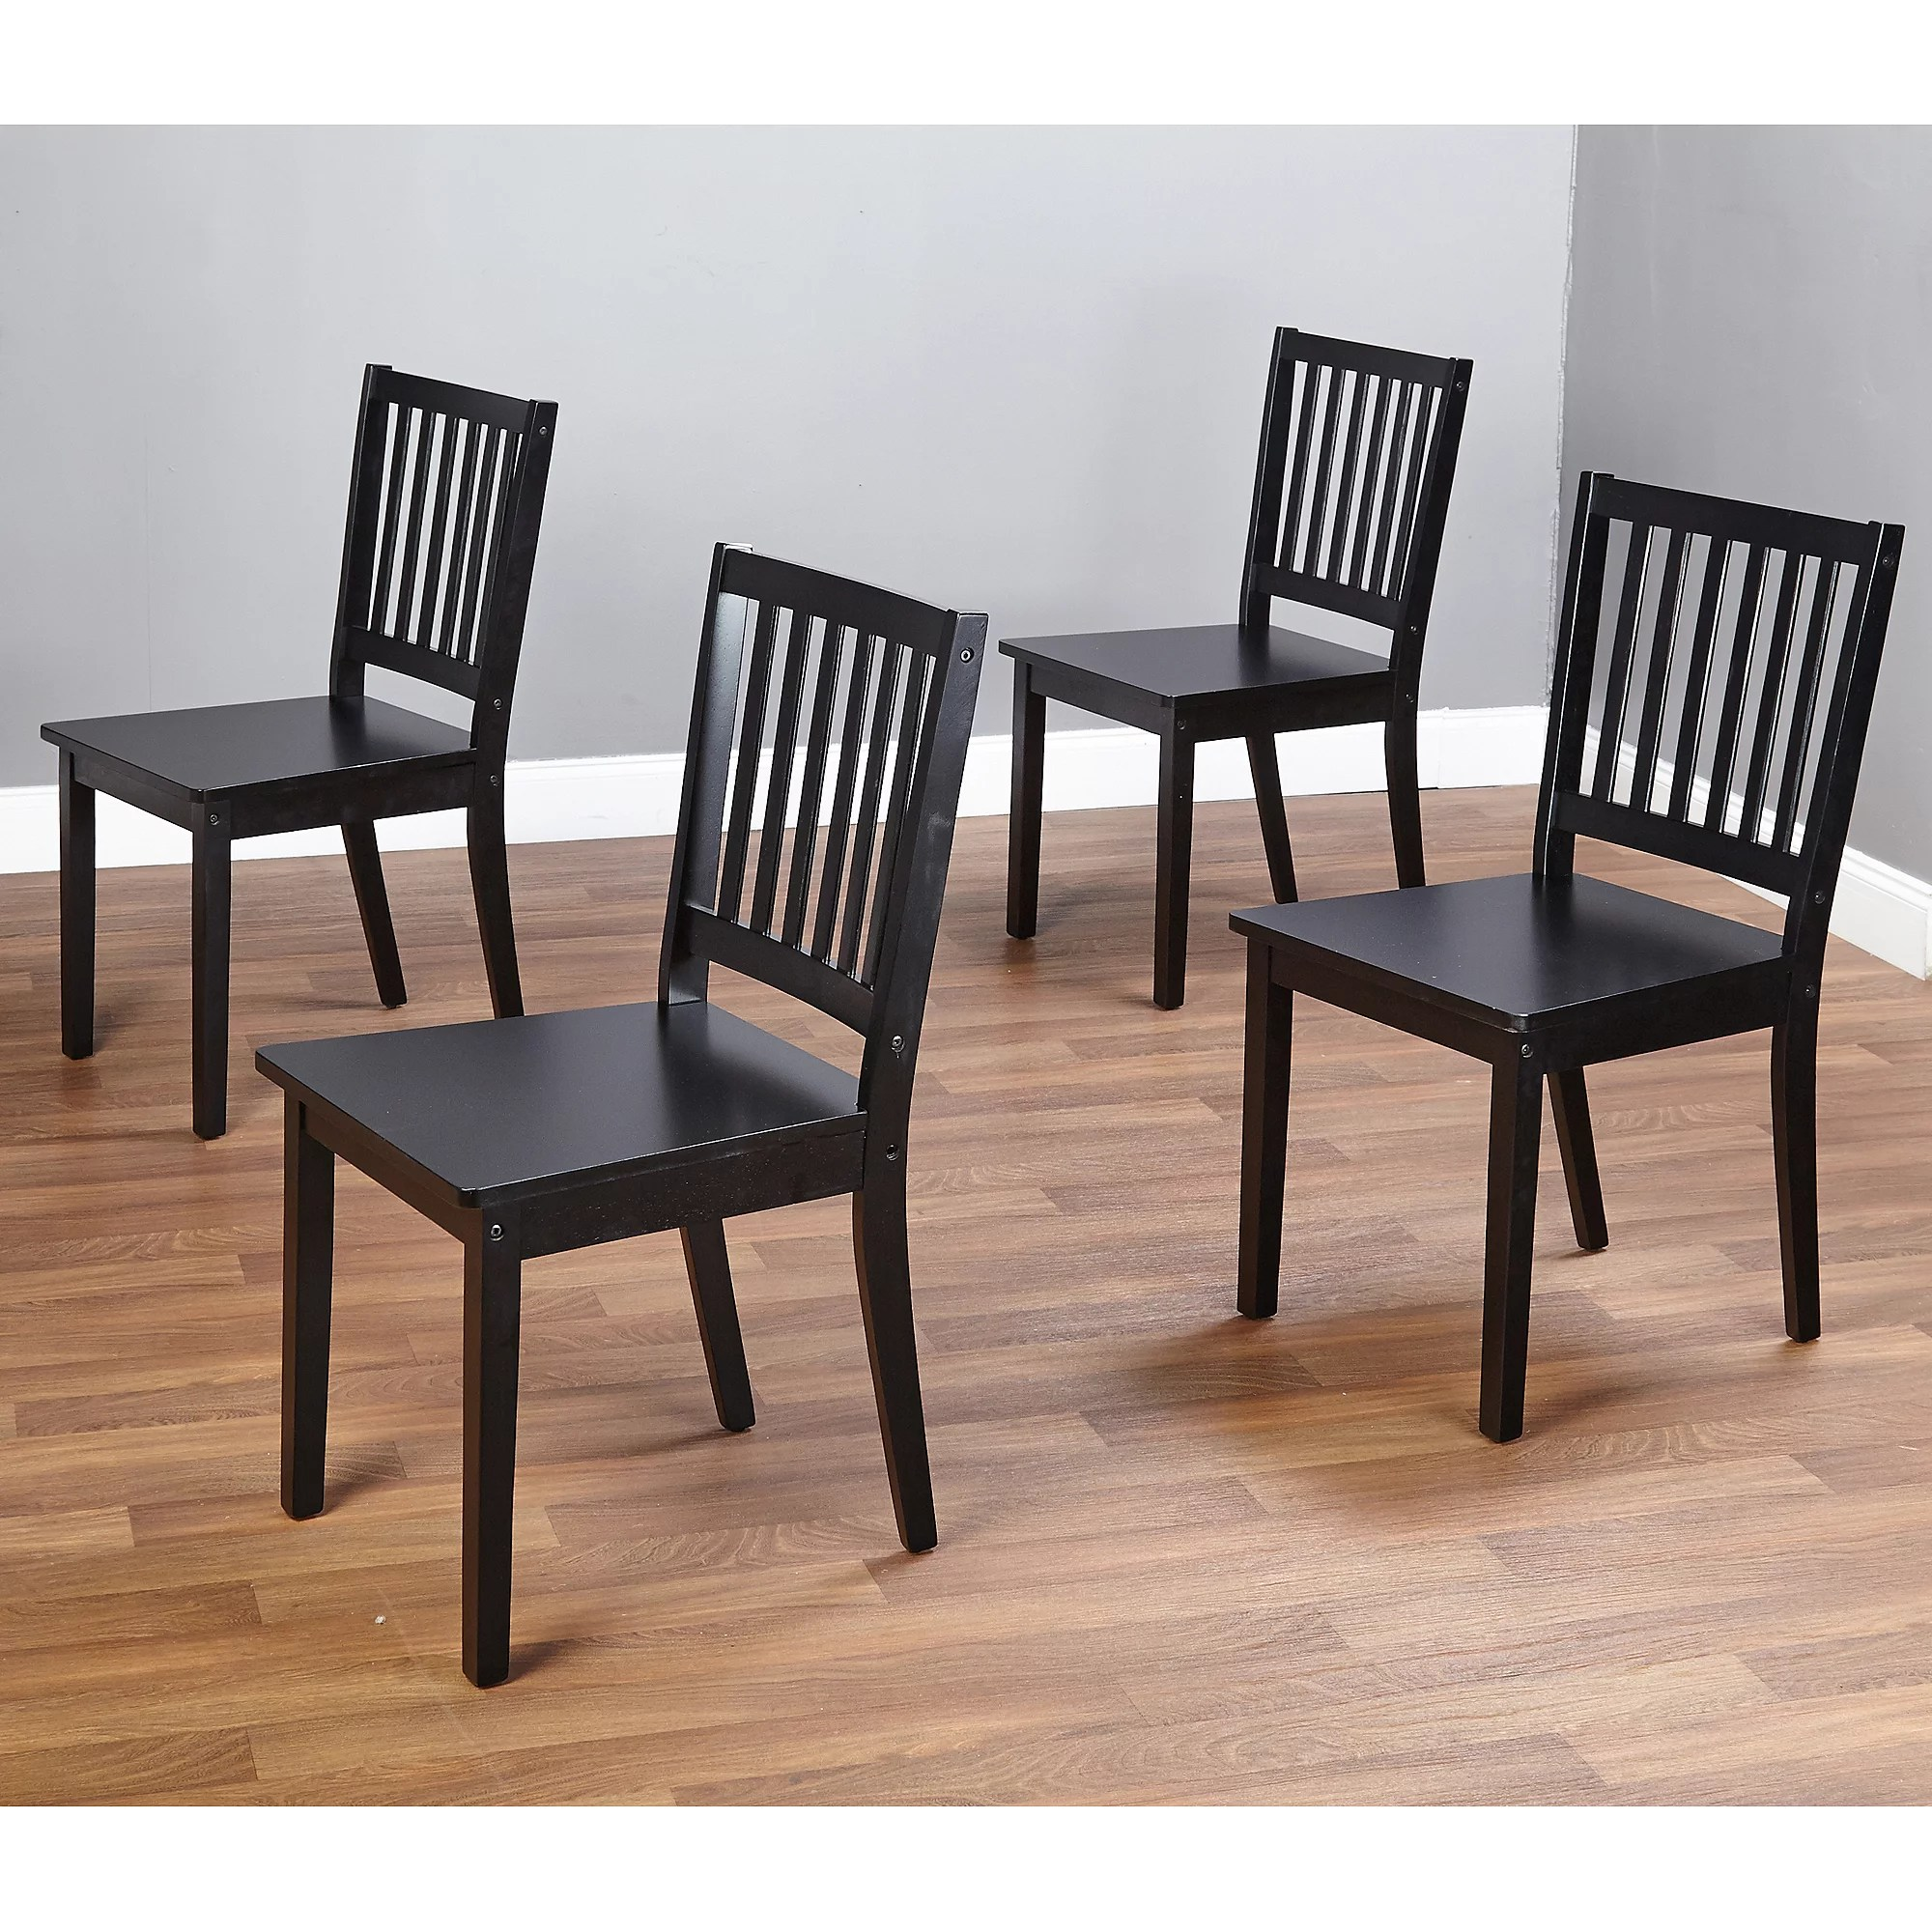 black kitchen chairs Shaker Dining Chairs Set of 4 Black